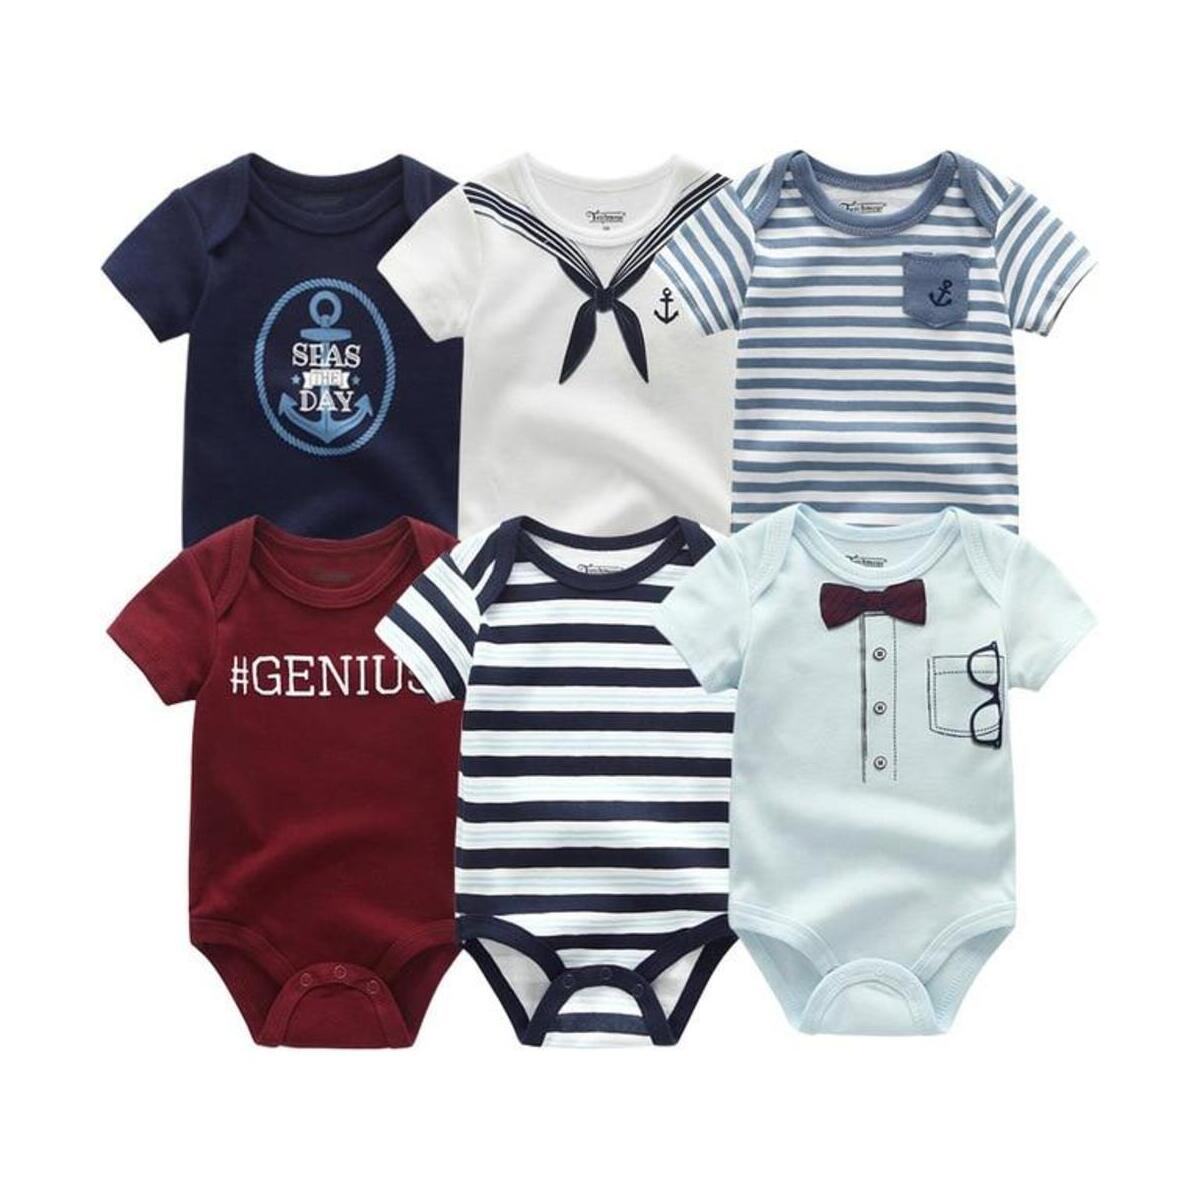 Little Baby Boy/Girl Outfits, Infant Baby Clothing Set